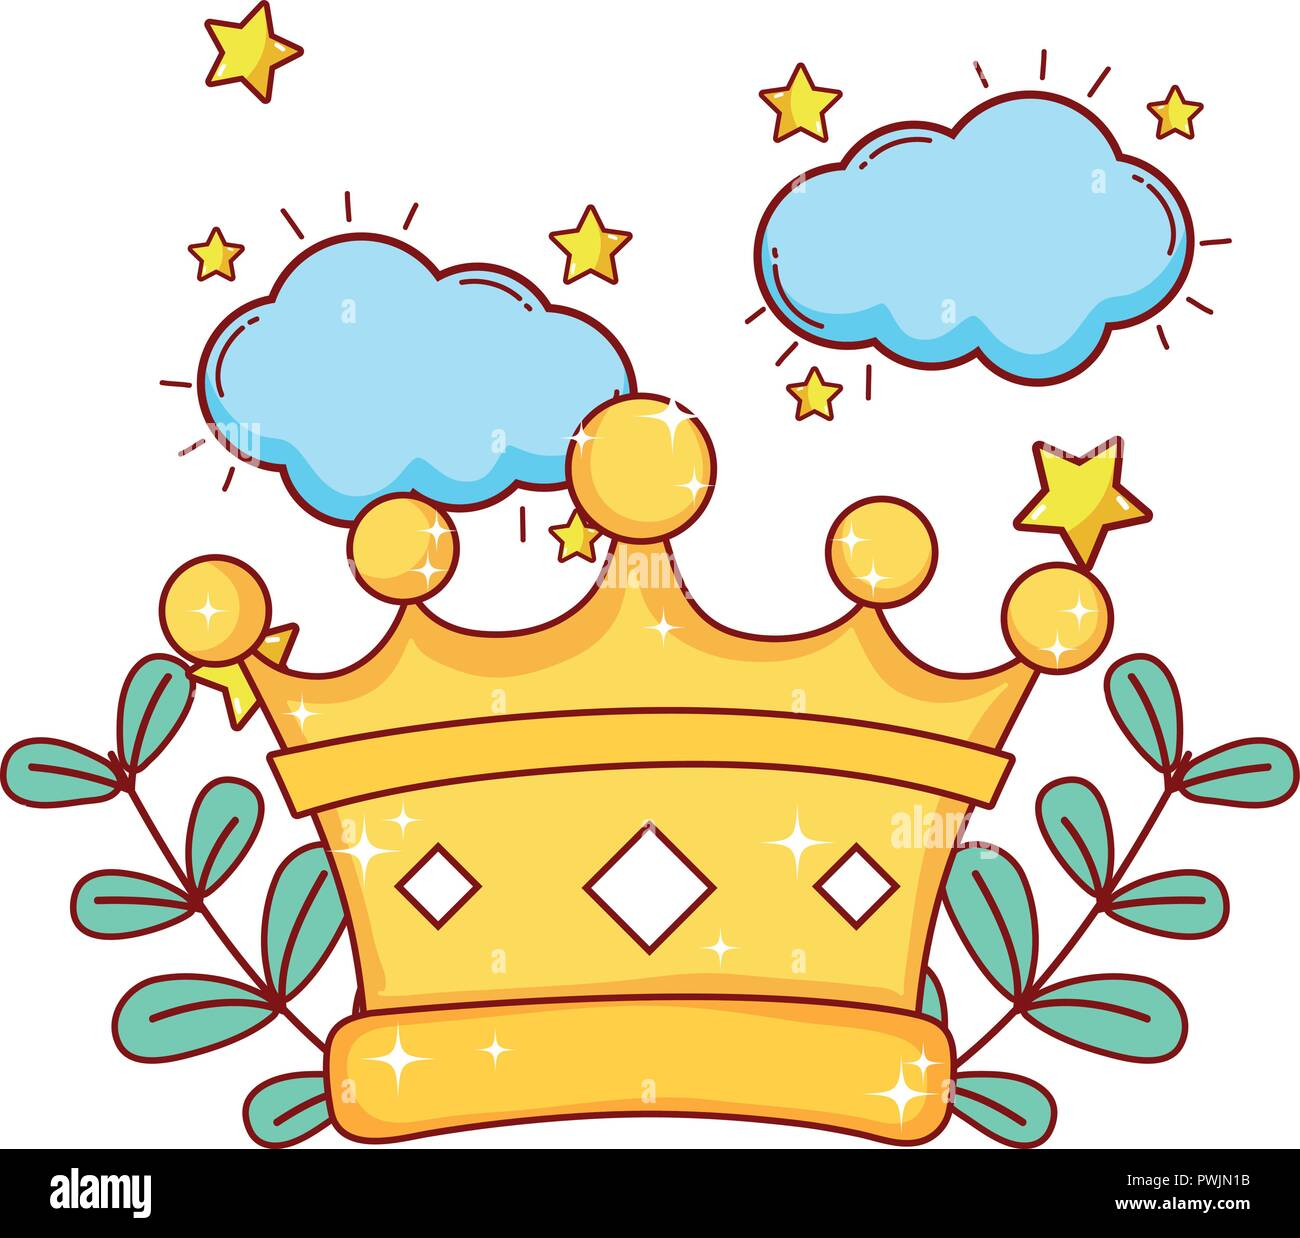 King Crown Cartoon Stock Vector Image Art Alamy Over 31,136 crown cartoon pictures to choose from, with no signup needed. alamy